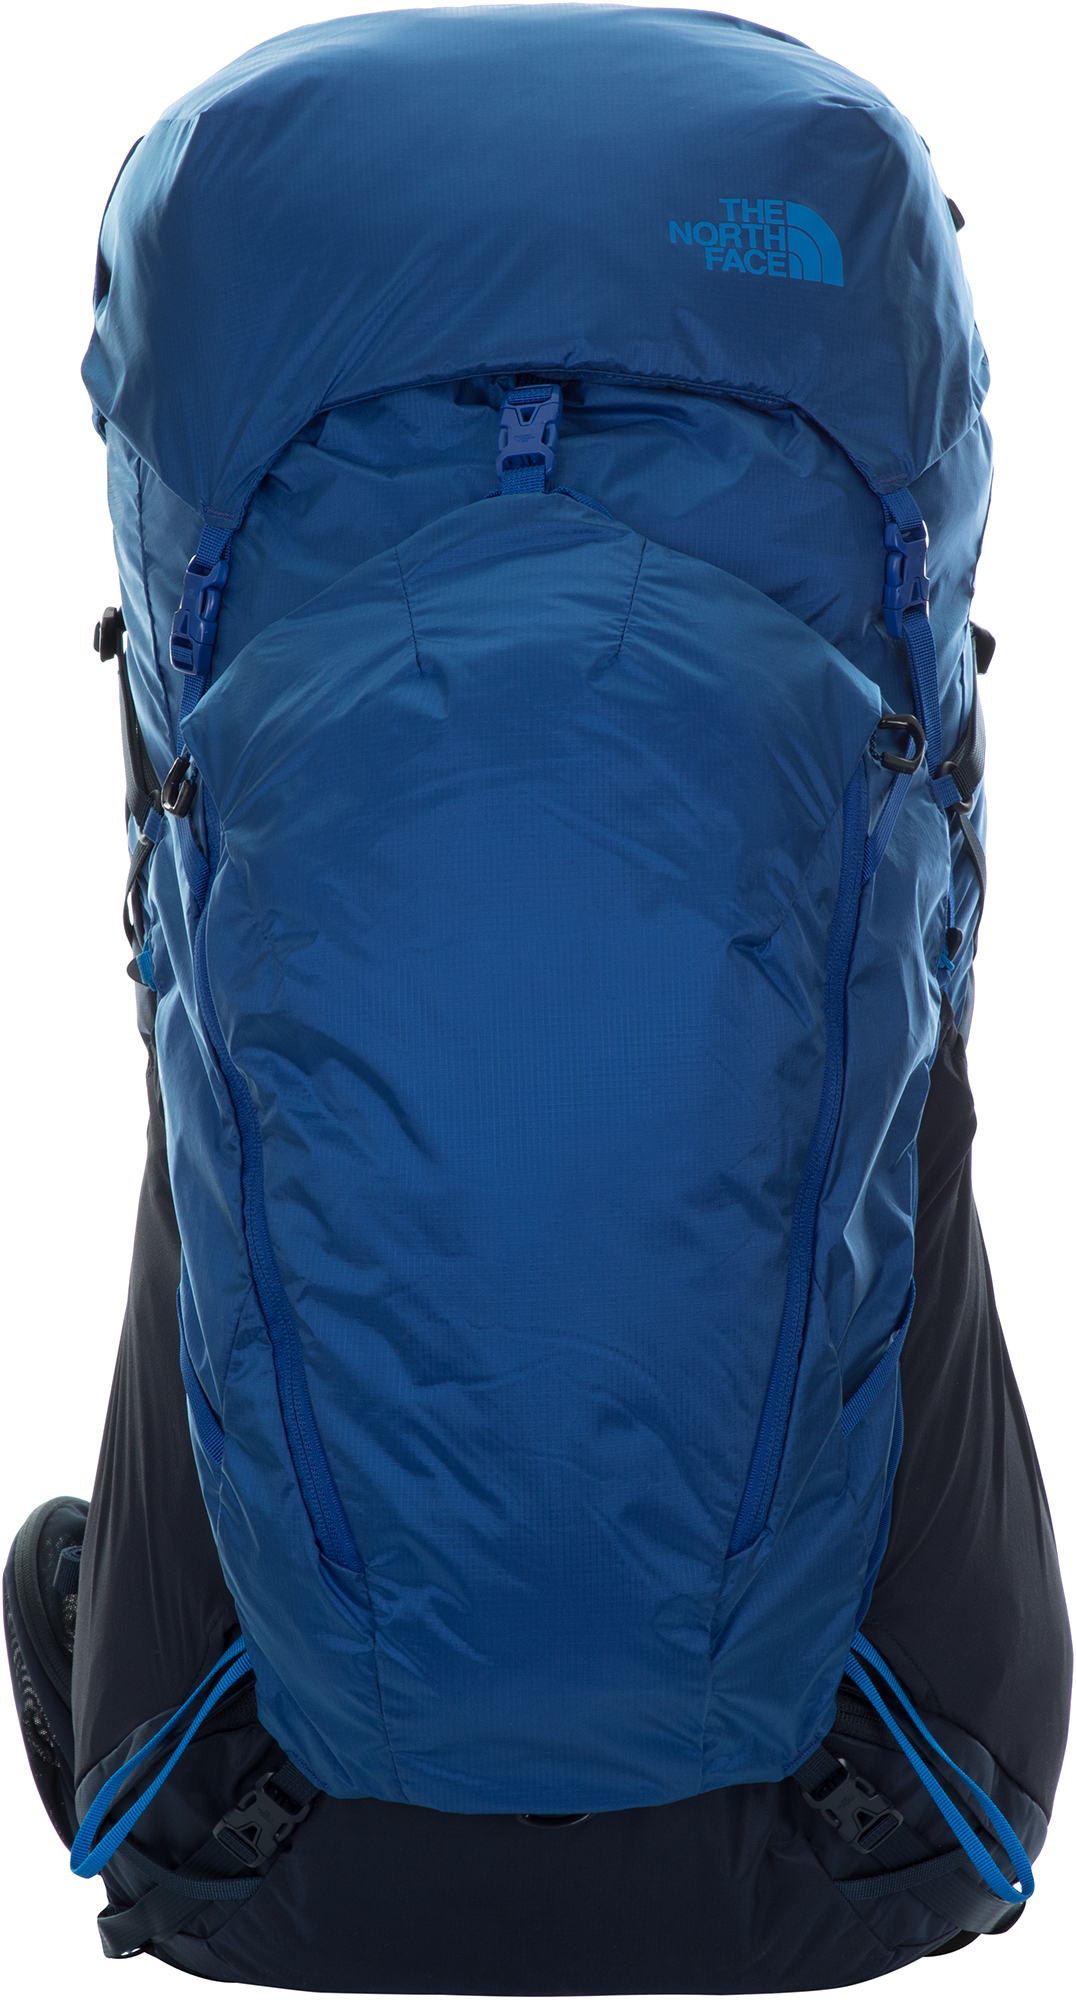 купить The North Face The North Face Banchee 50 недорого